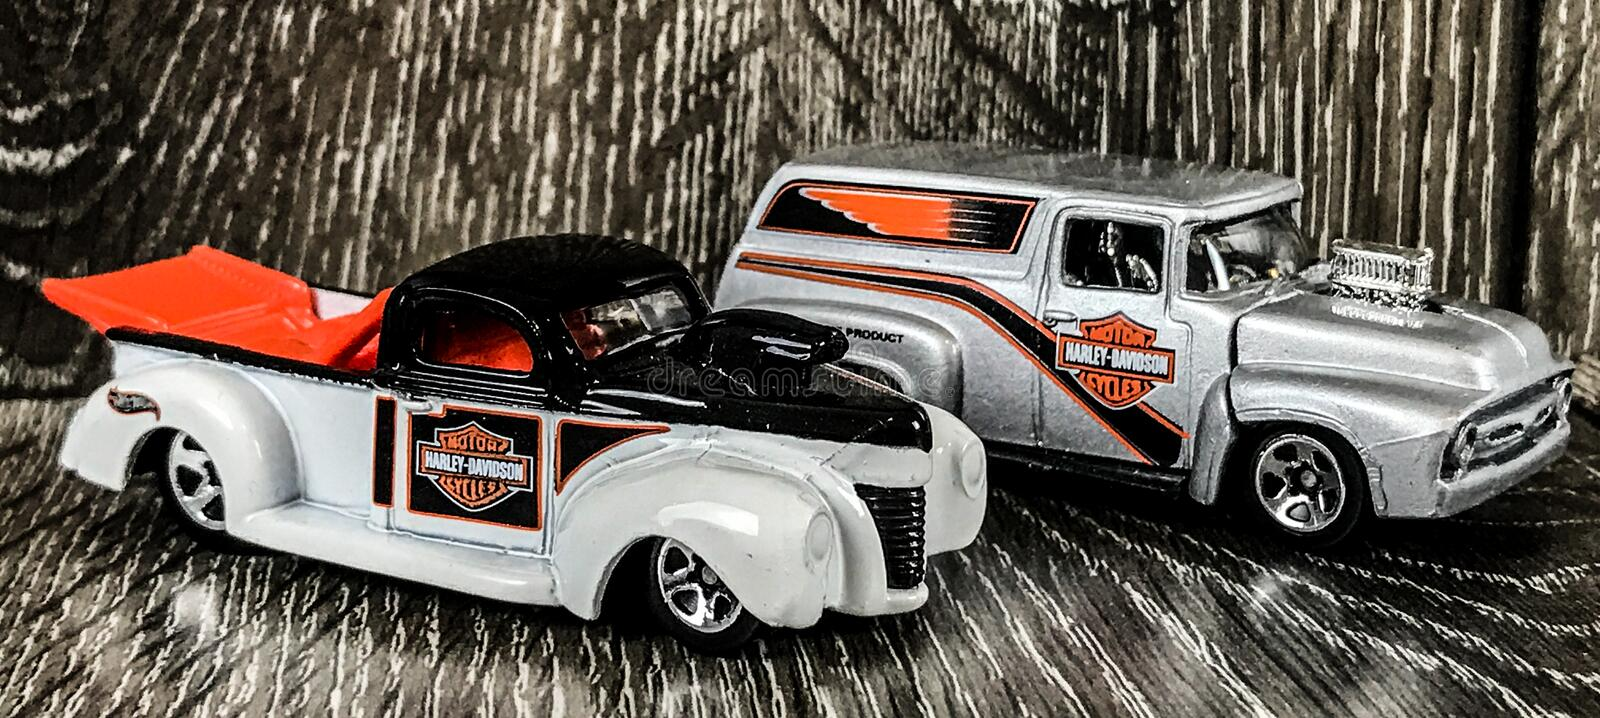 Harley Davidson Die Cast Hotwheels toys. A pair of Harley Davidson Die cast Hotwheels toys royalty free stock photography